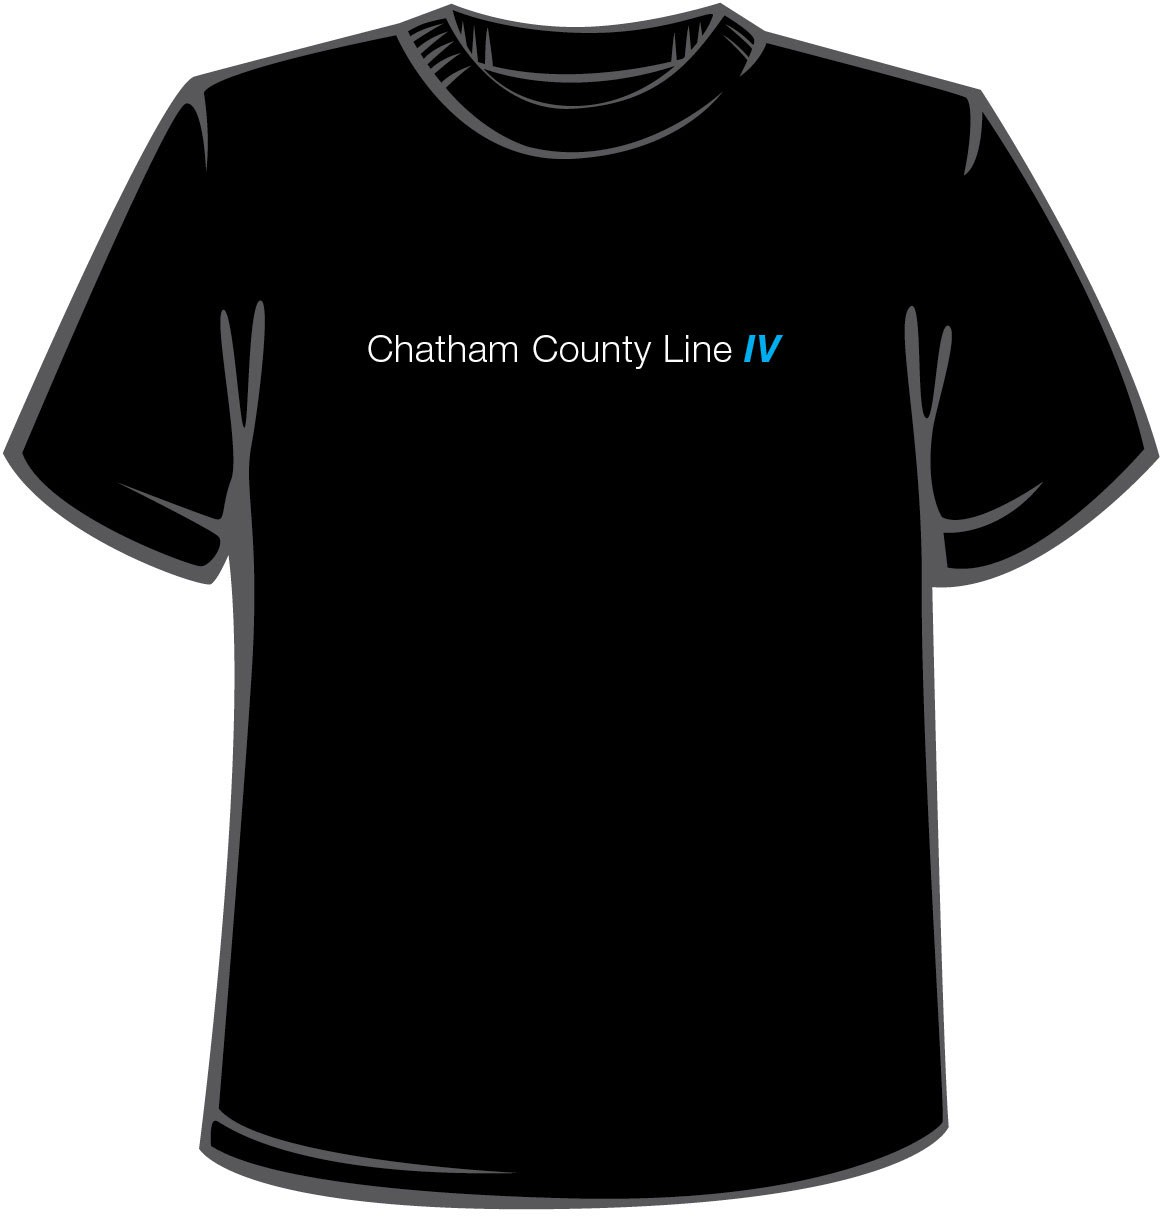 Chatham County Line - IV Tee